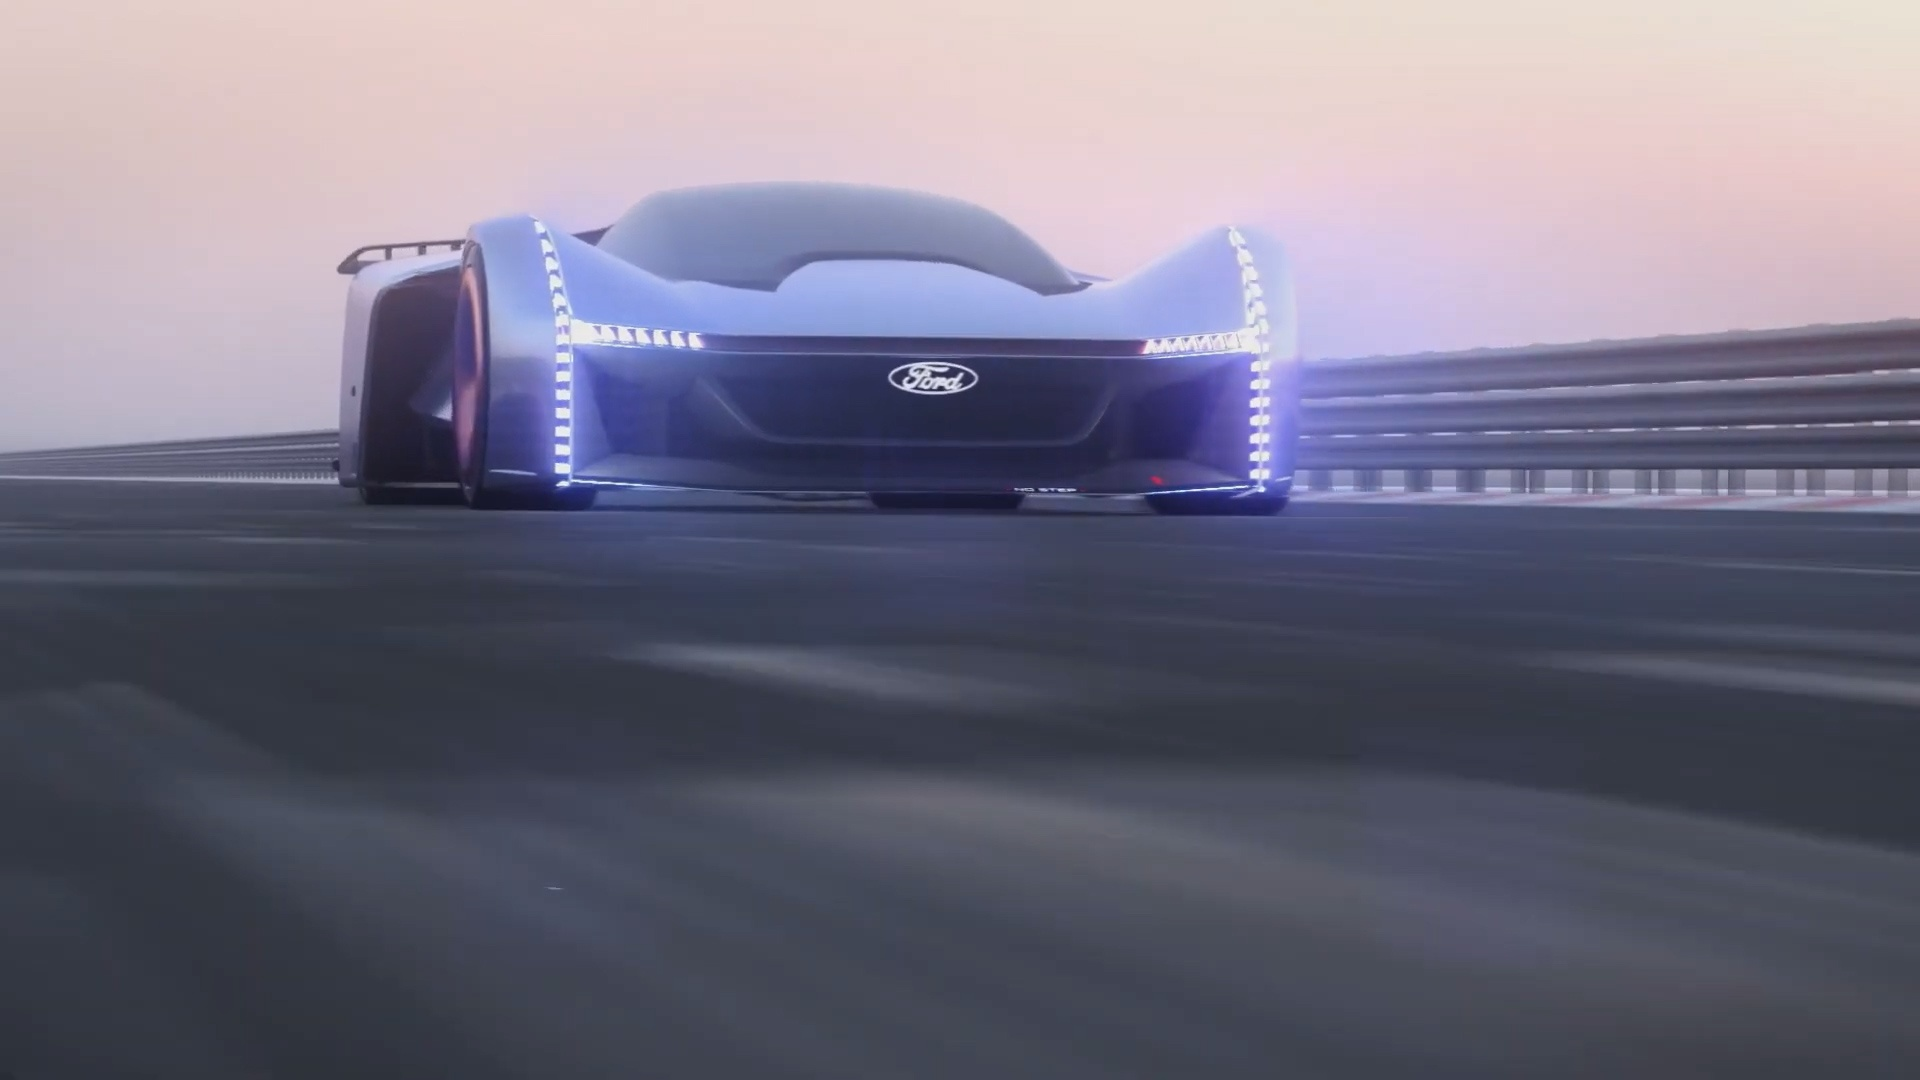 Ford Embraces Gaming To Change The Way It Conceives, Designs And Tests Vehicles